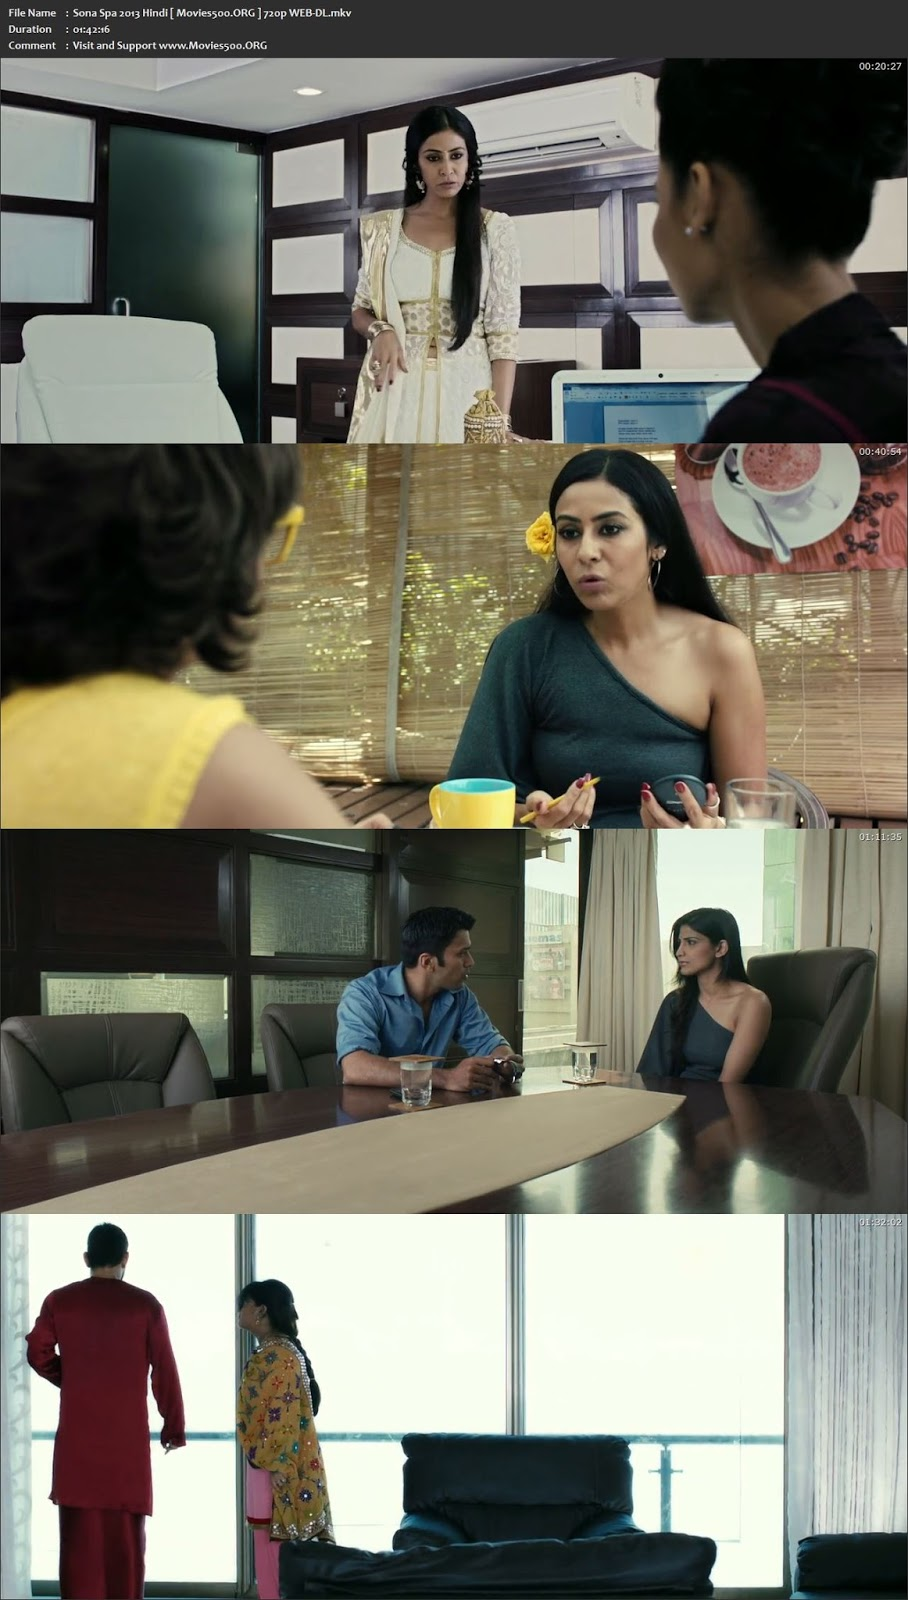 Sona Spa 2013 Hindi Full Movie WEB DL 720p ESubs